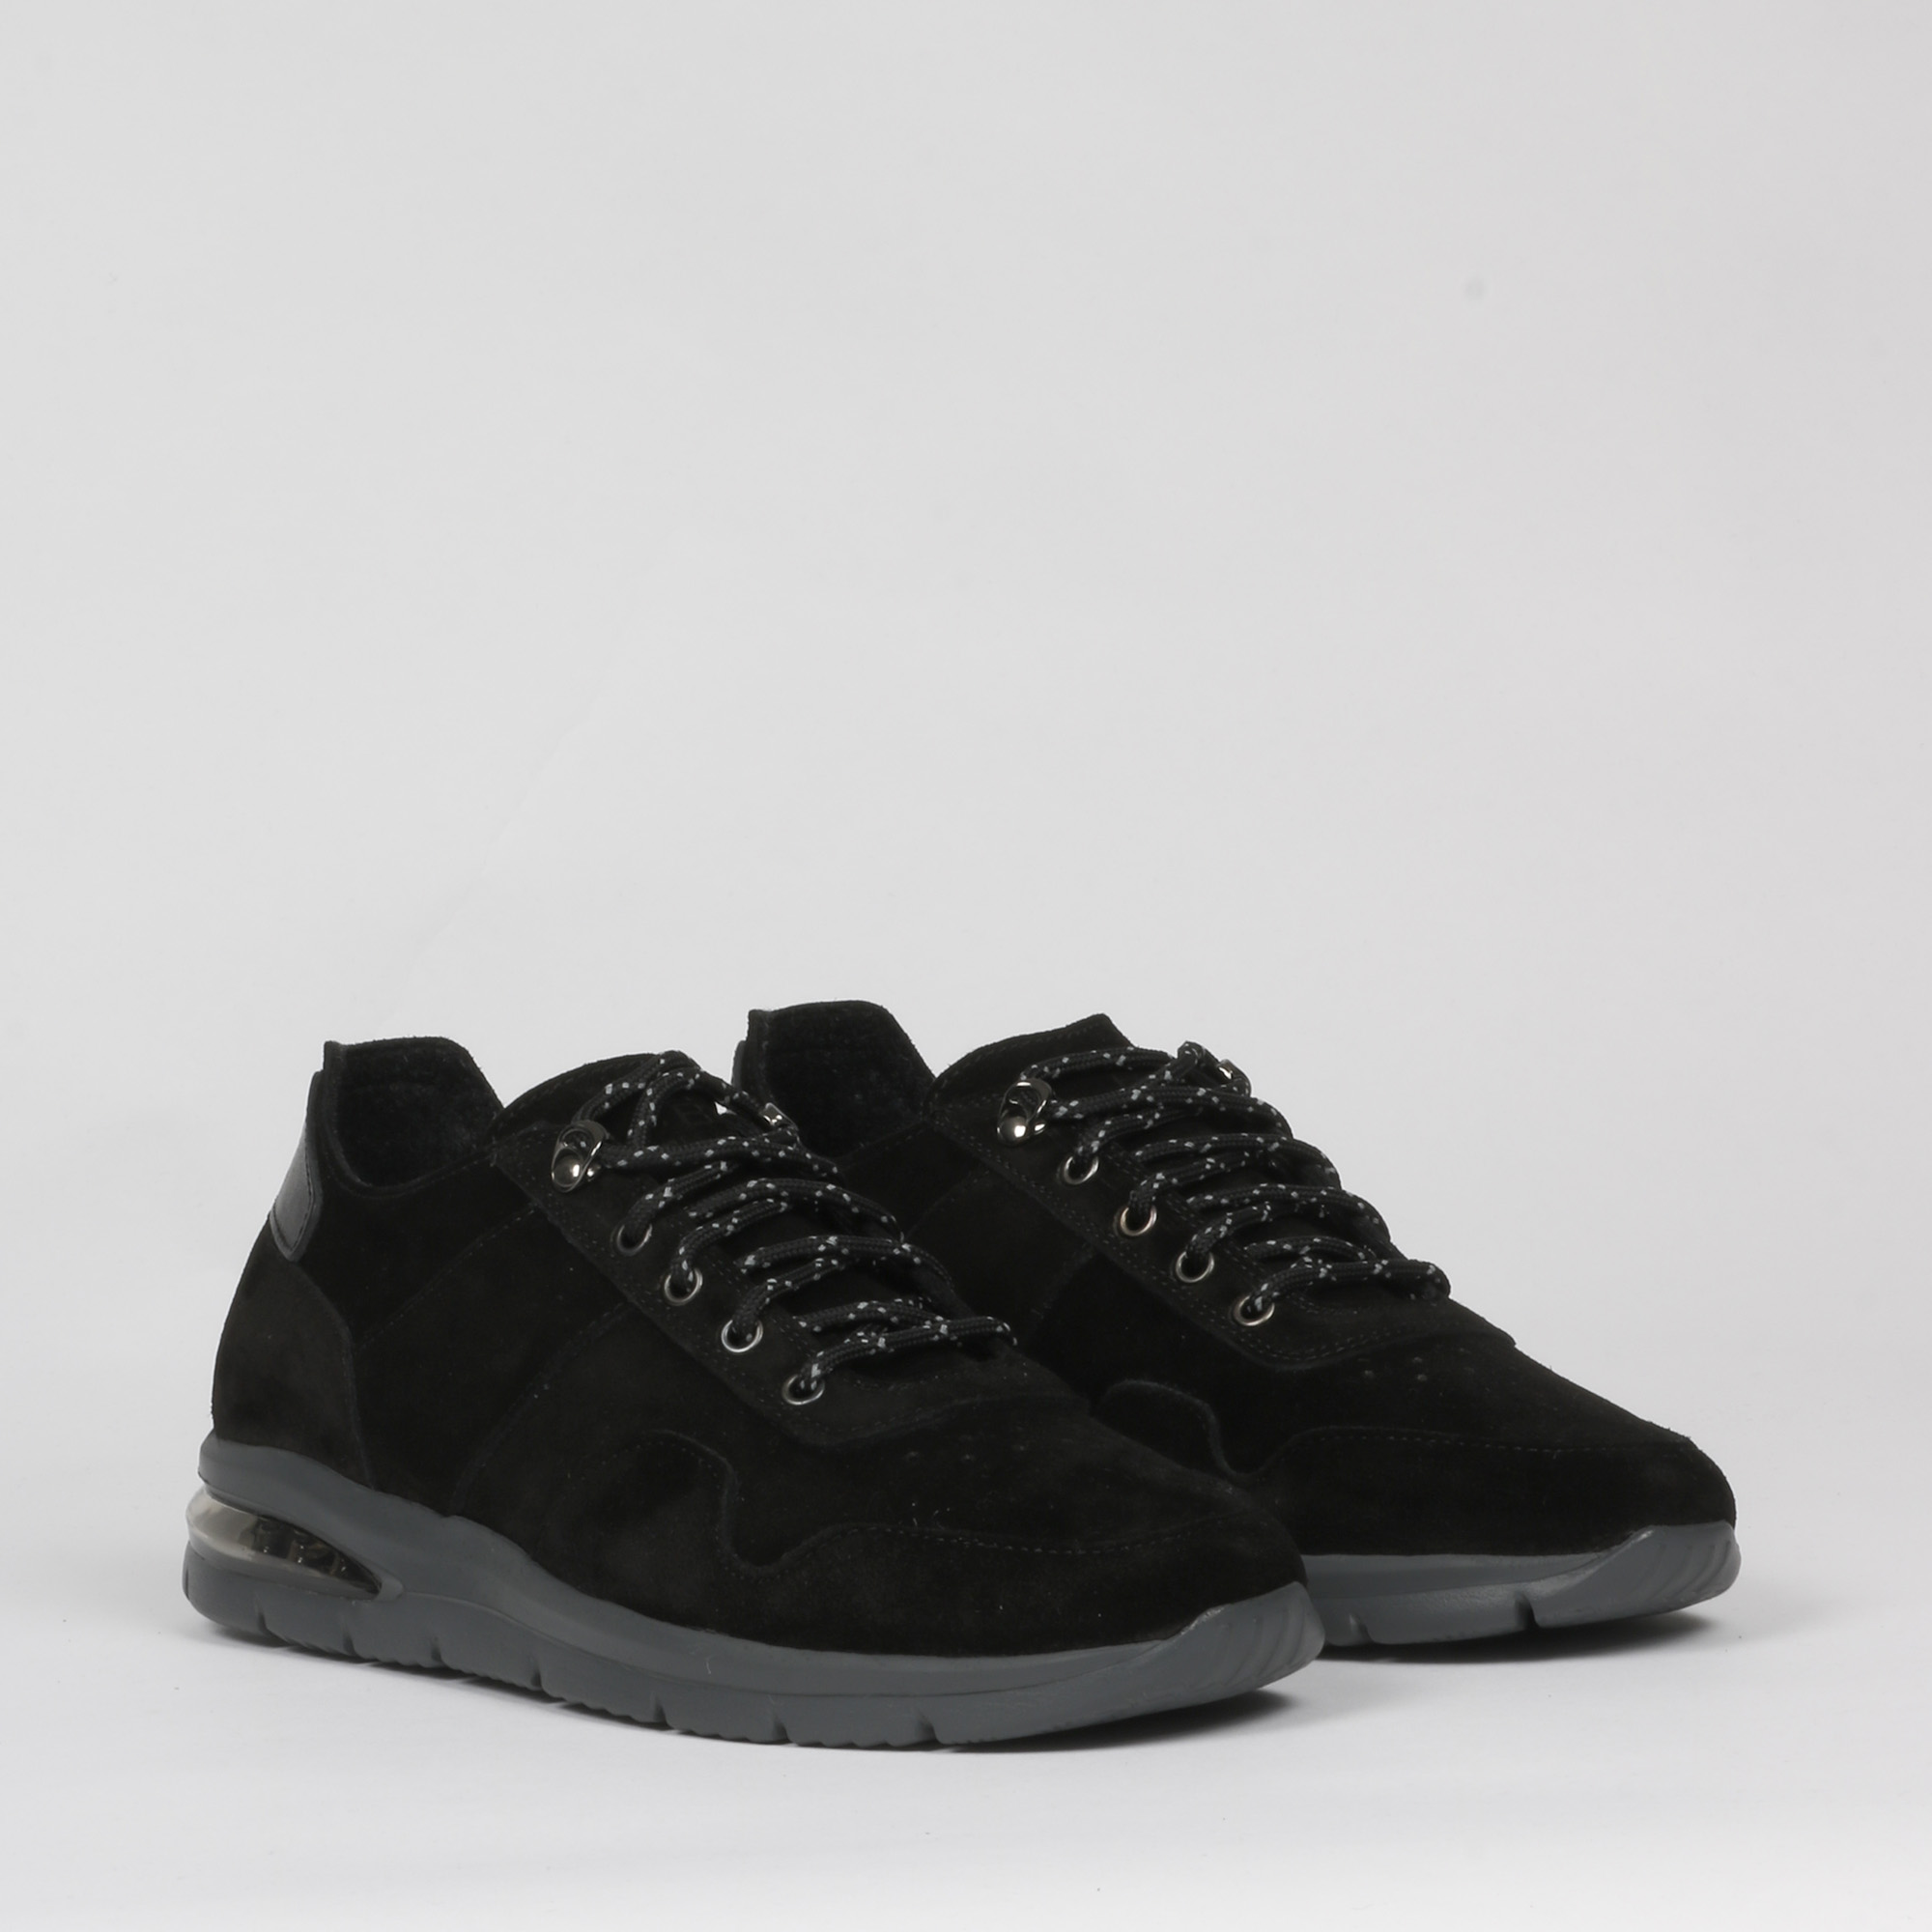 Air grecale suede - Nero